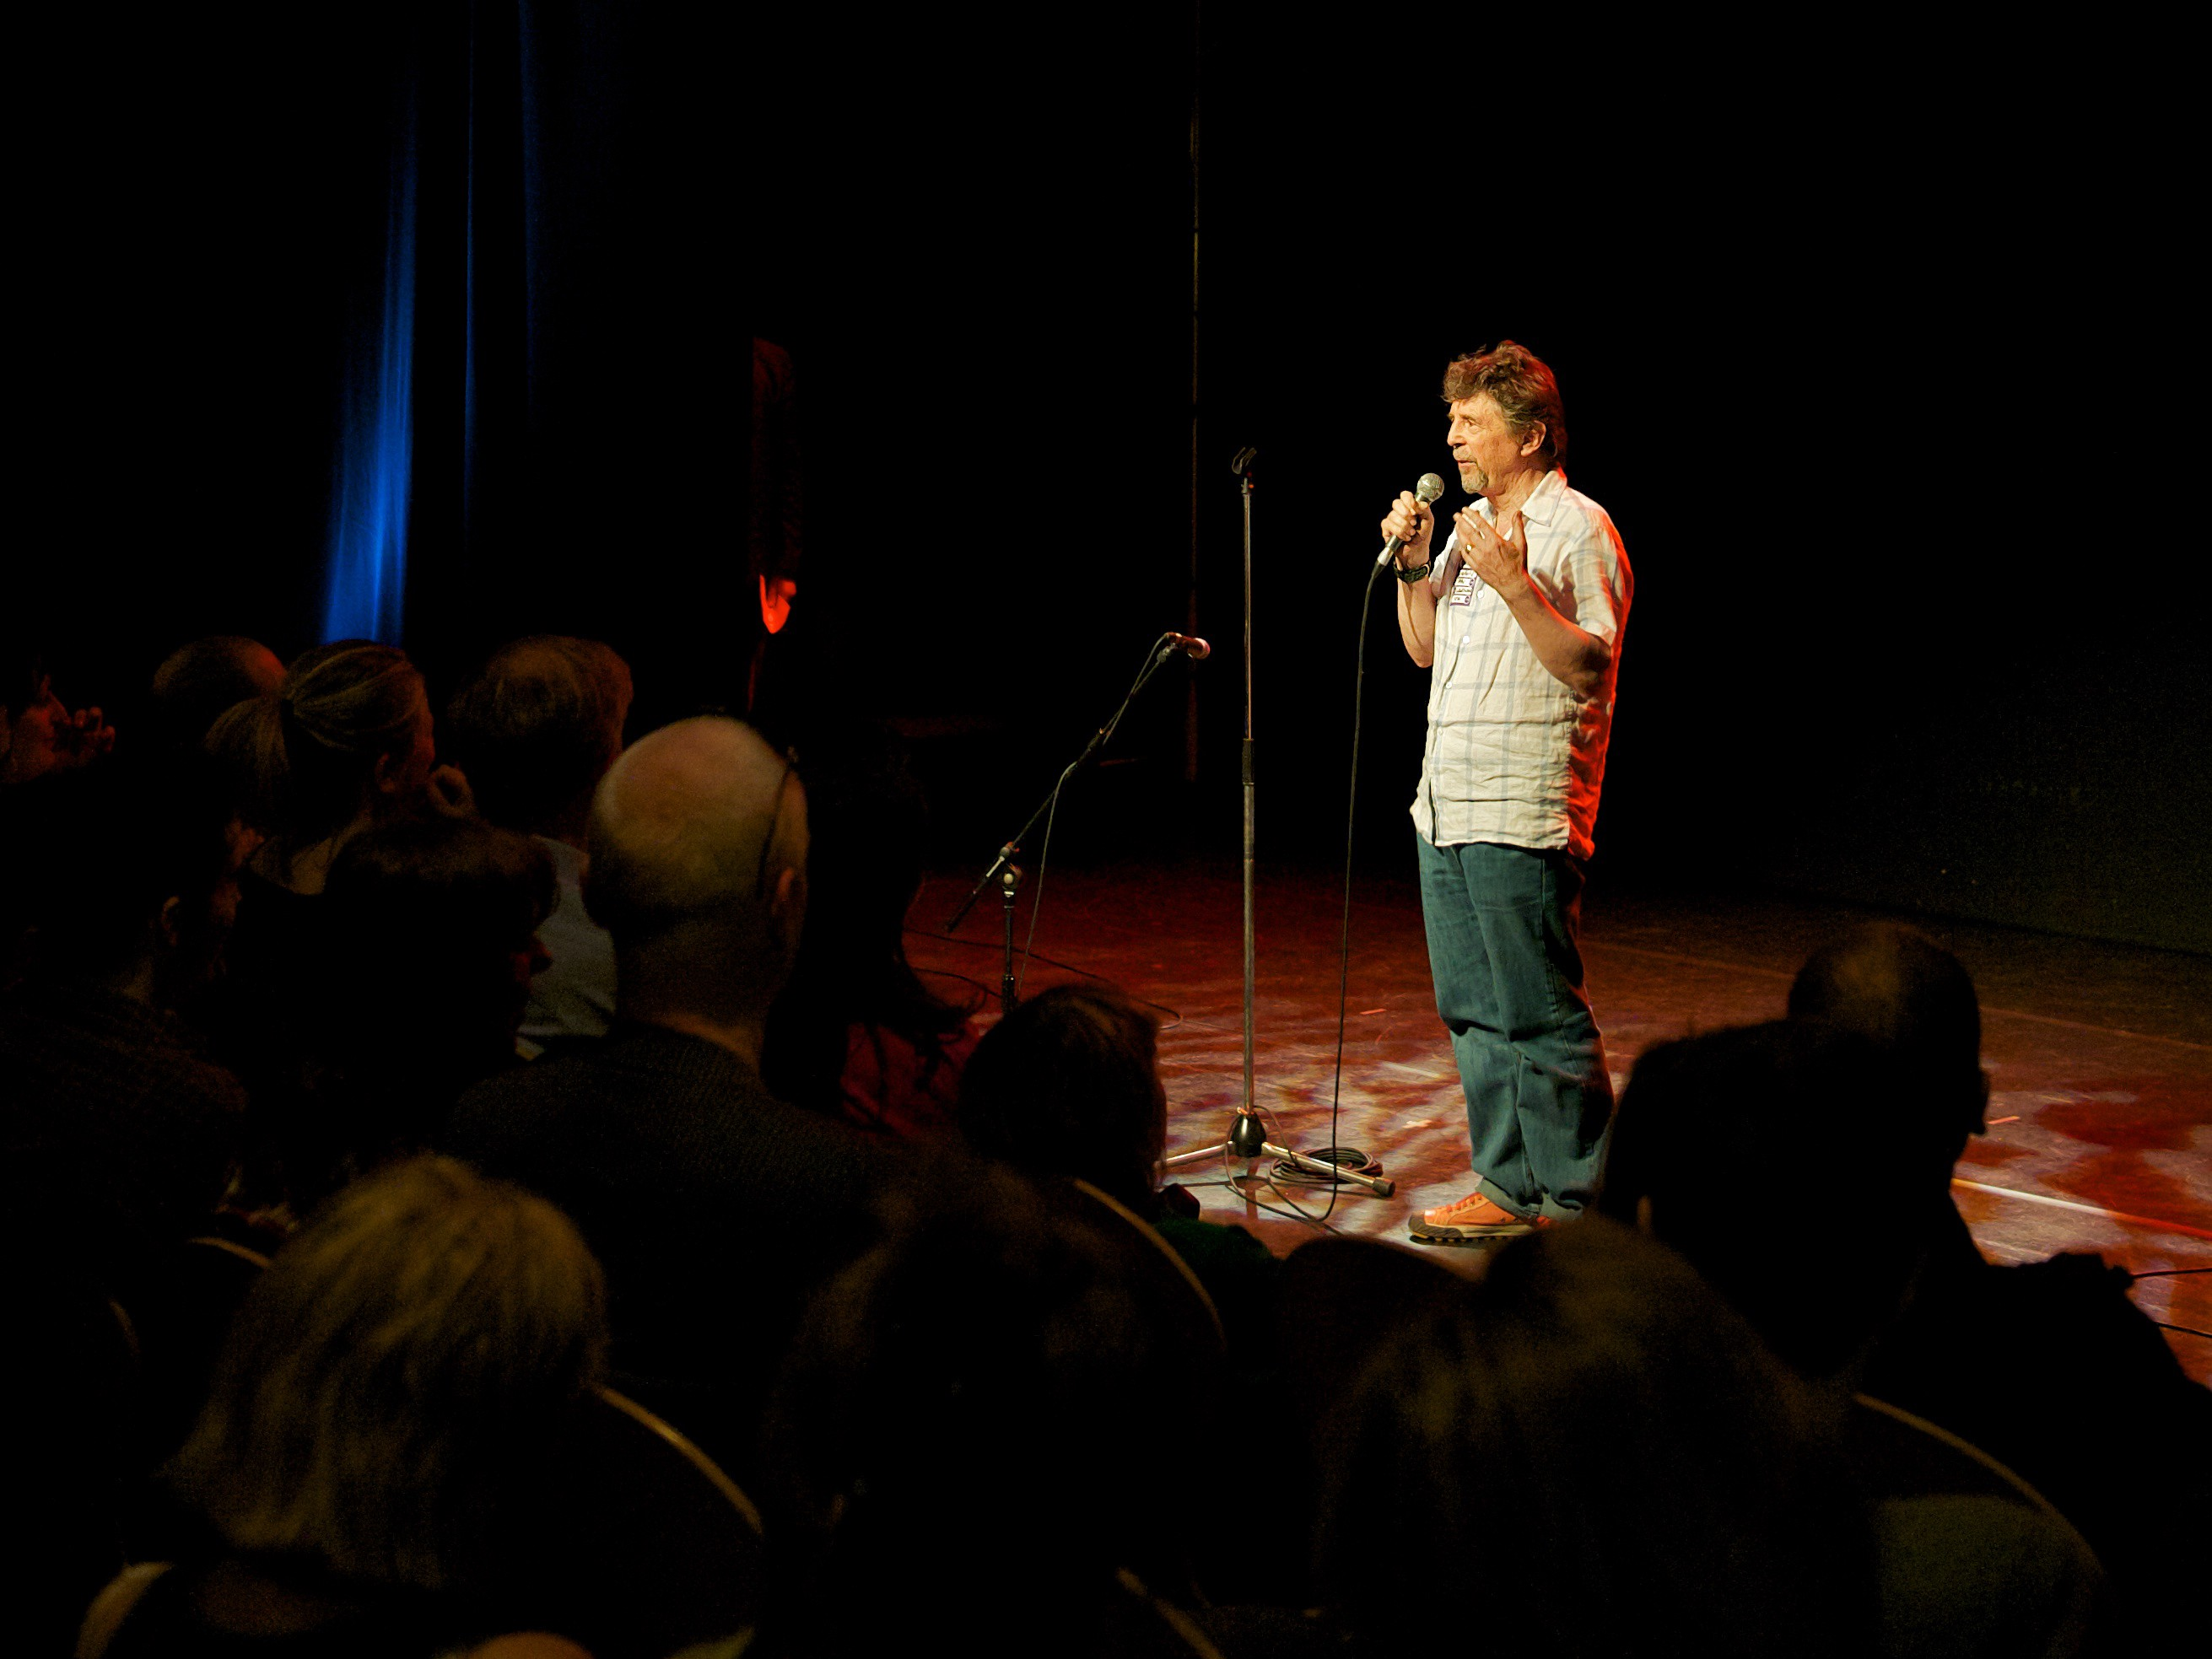 Author Gerry Maguire Thompson performing stand-up comedy about stuff that annoys him